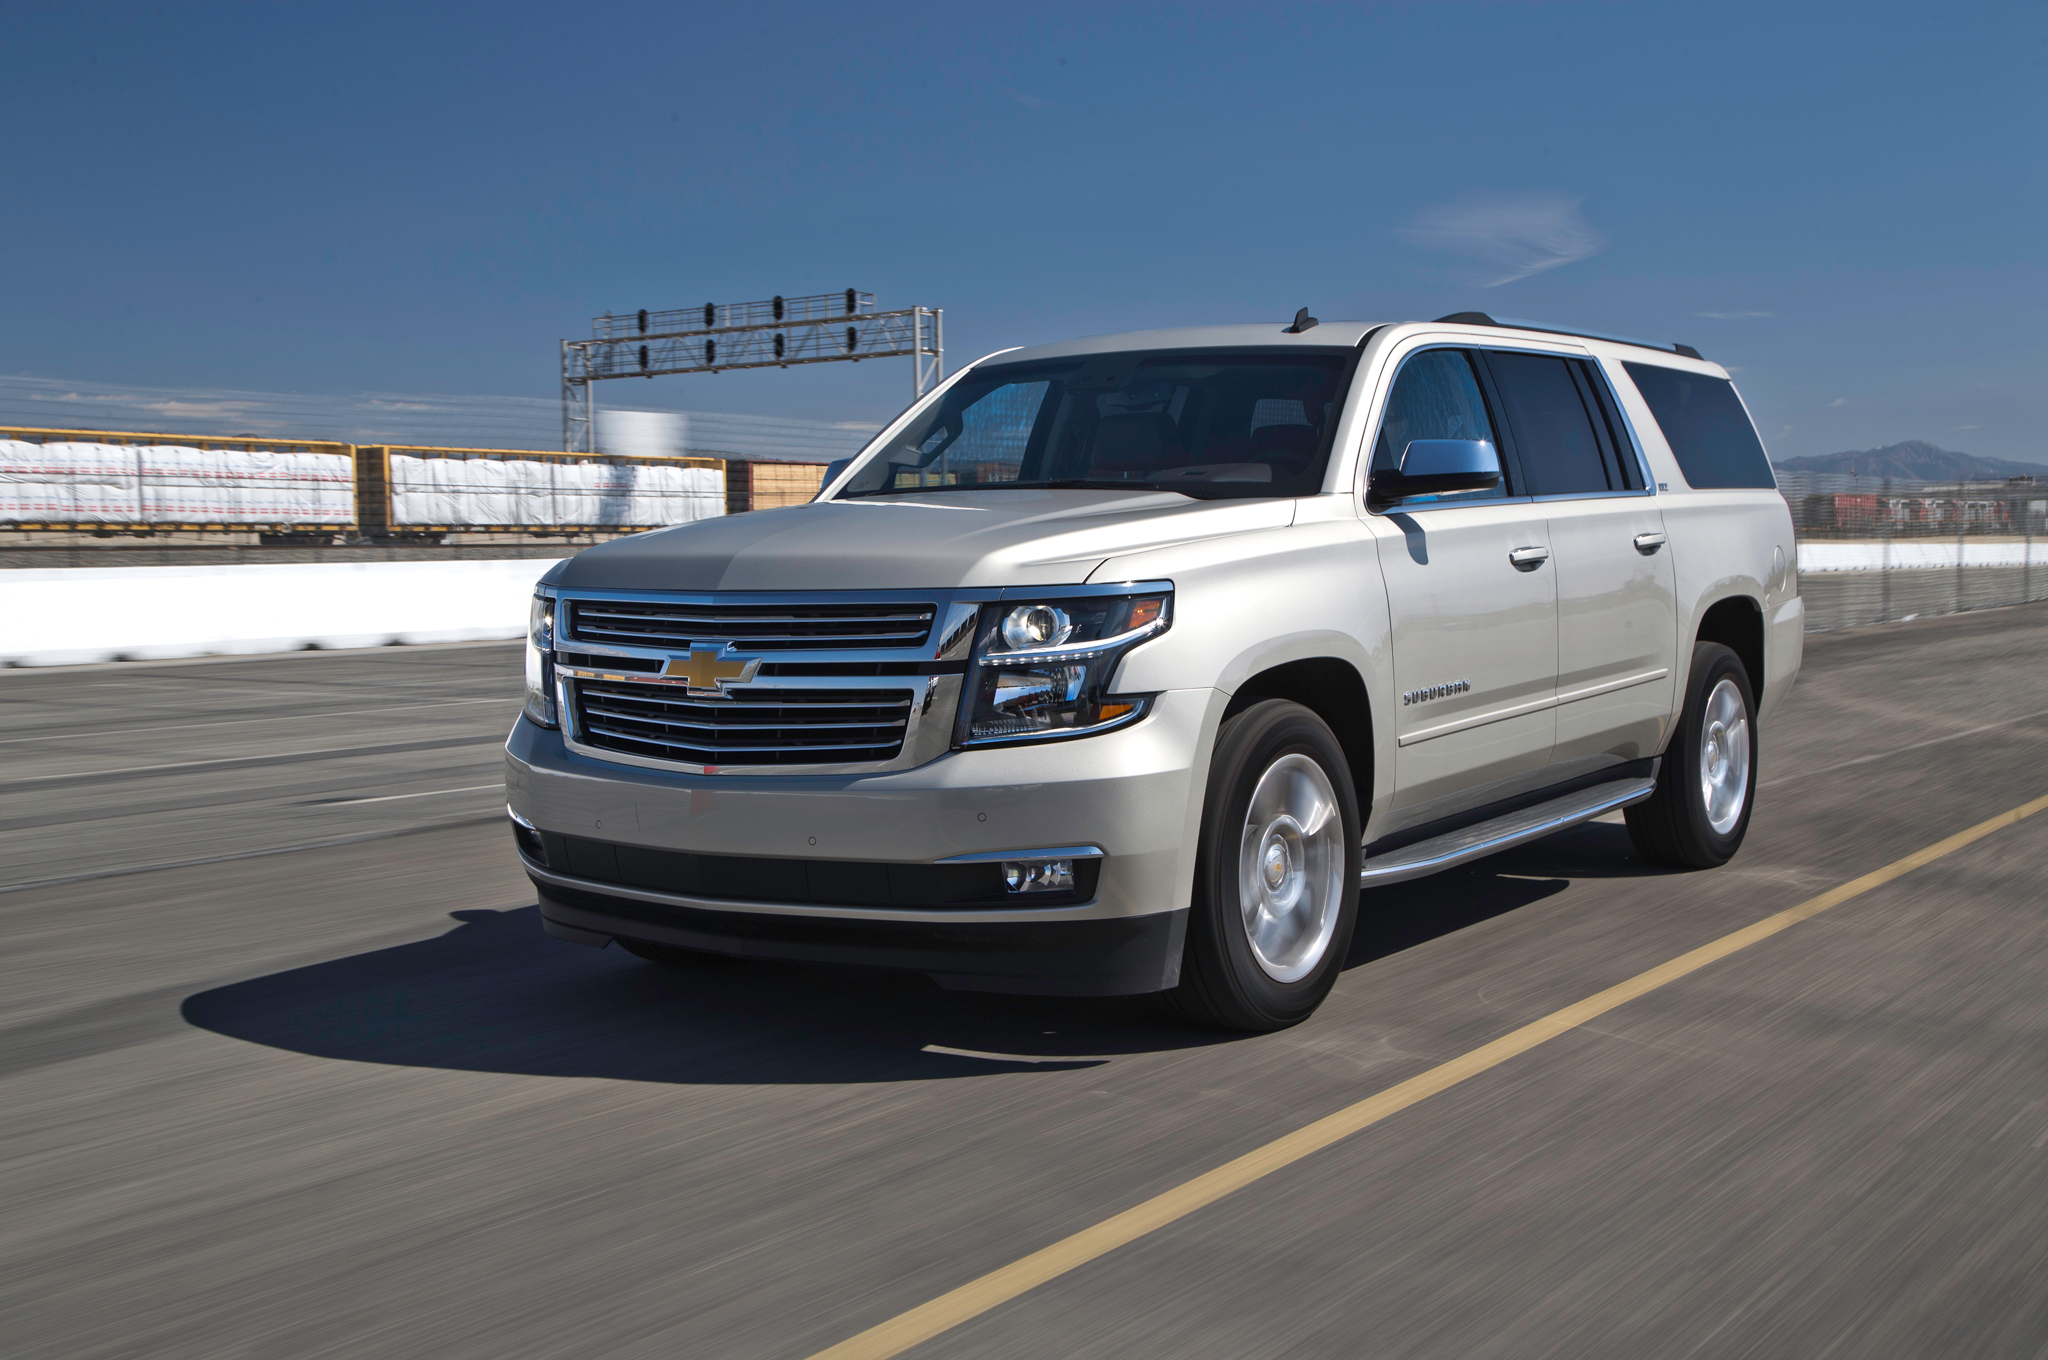 2015 Chevrolet Suburban Front Side View (Photo 30 of 33)